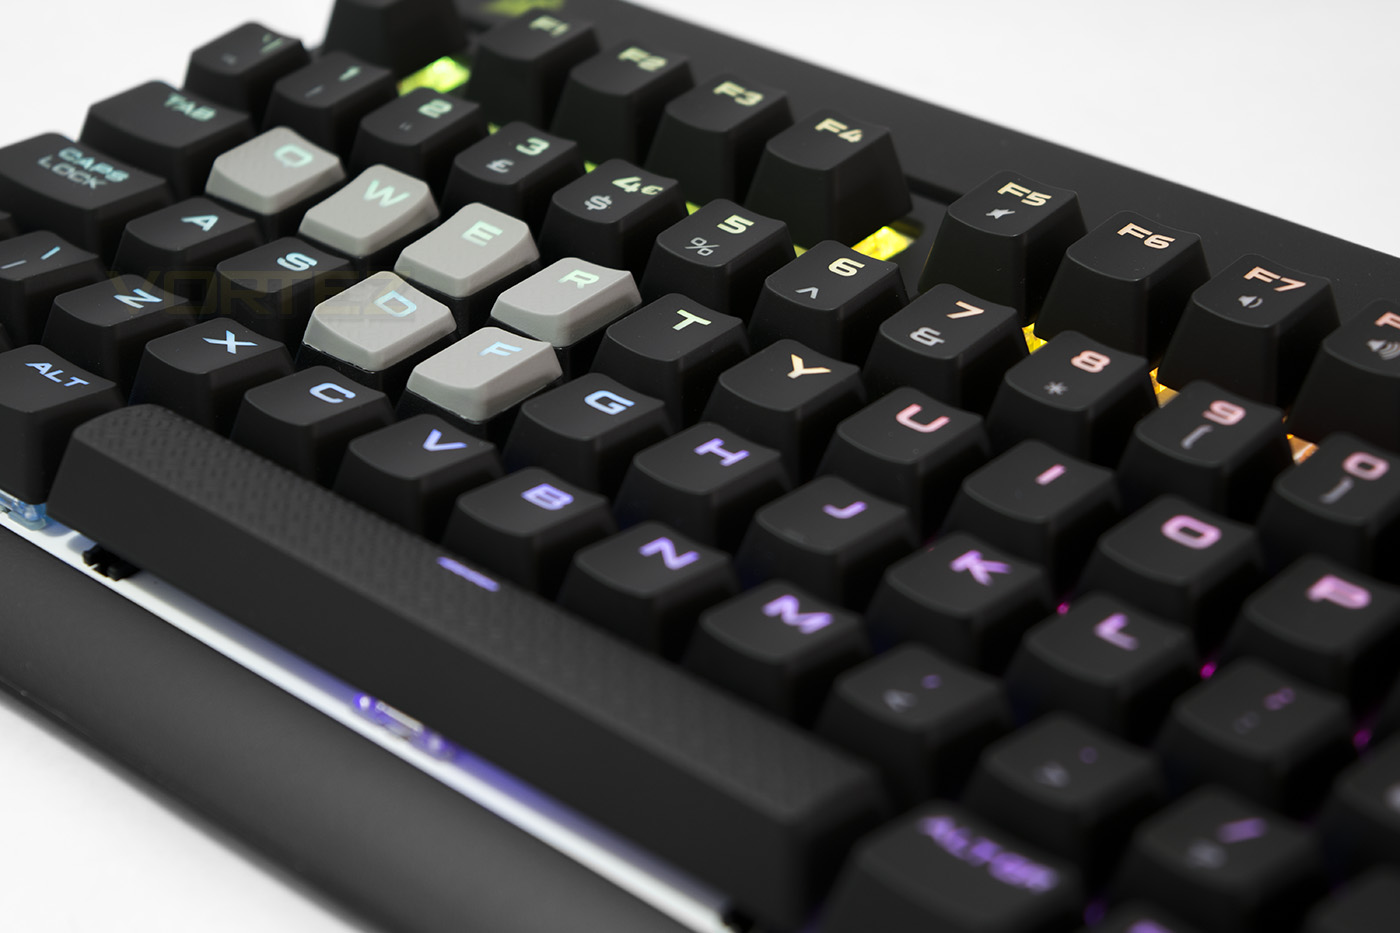 Corsair Strafe Rgb Review Performance Testing Gaming Cherry Mx Red Led Products In Regards To Especially When They Are Using Renowned Mechanical Switches The Reliability And Of Has Become